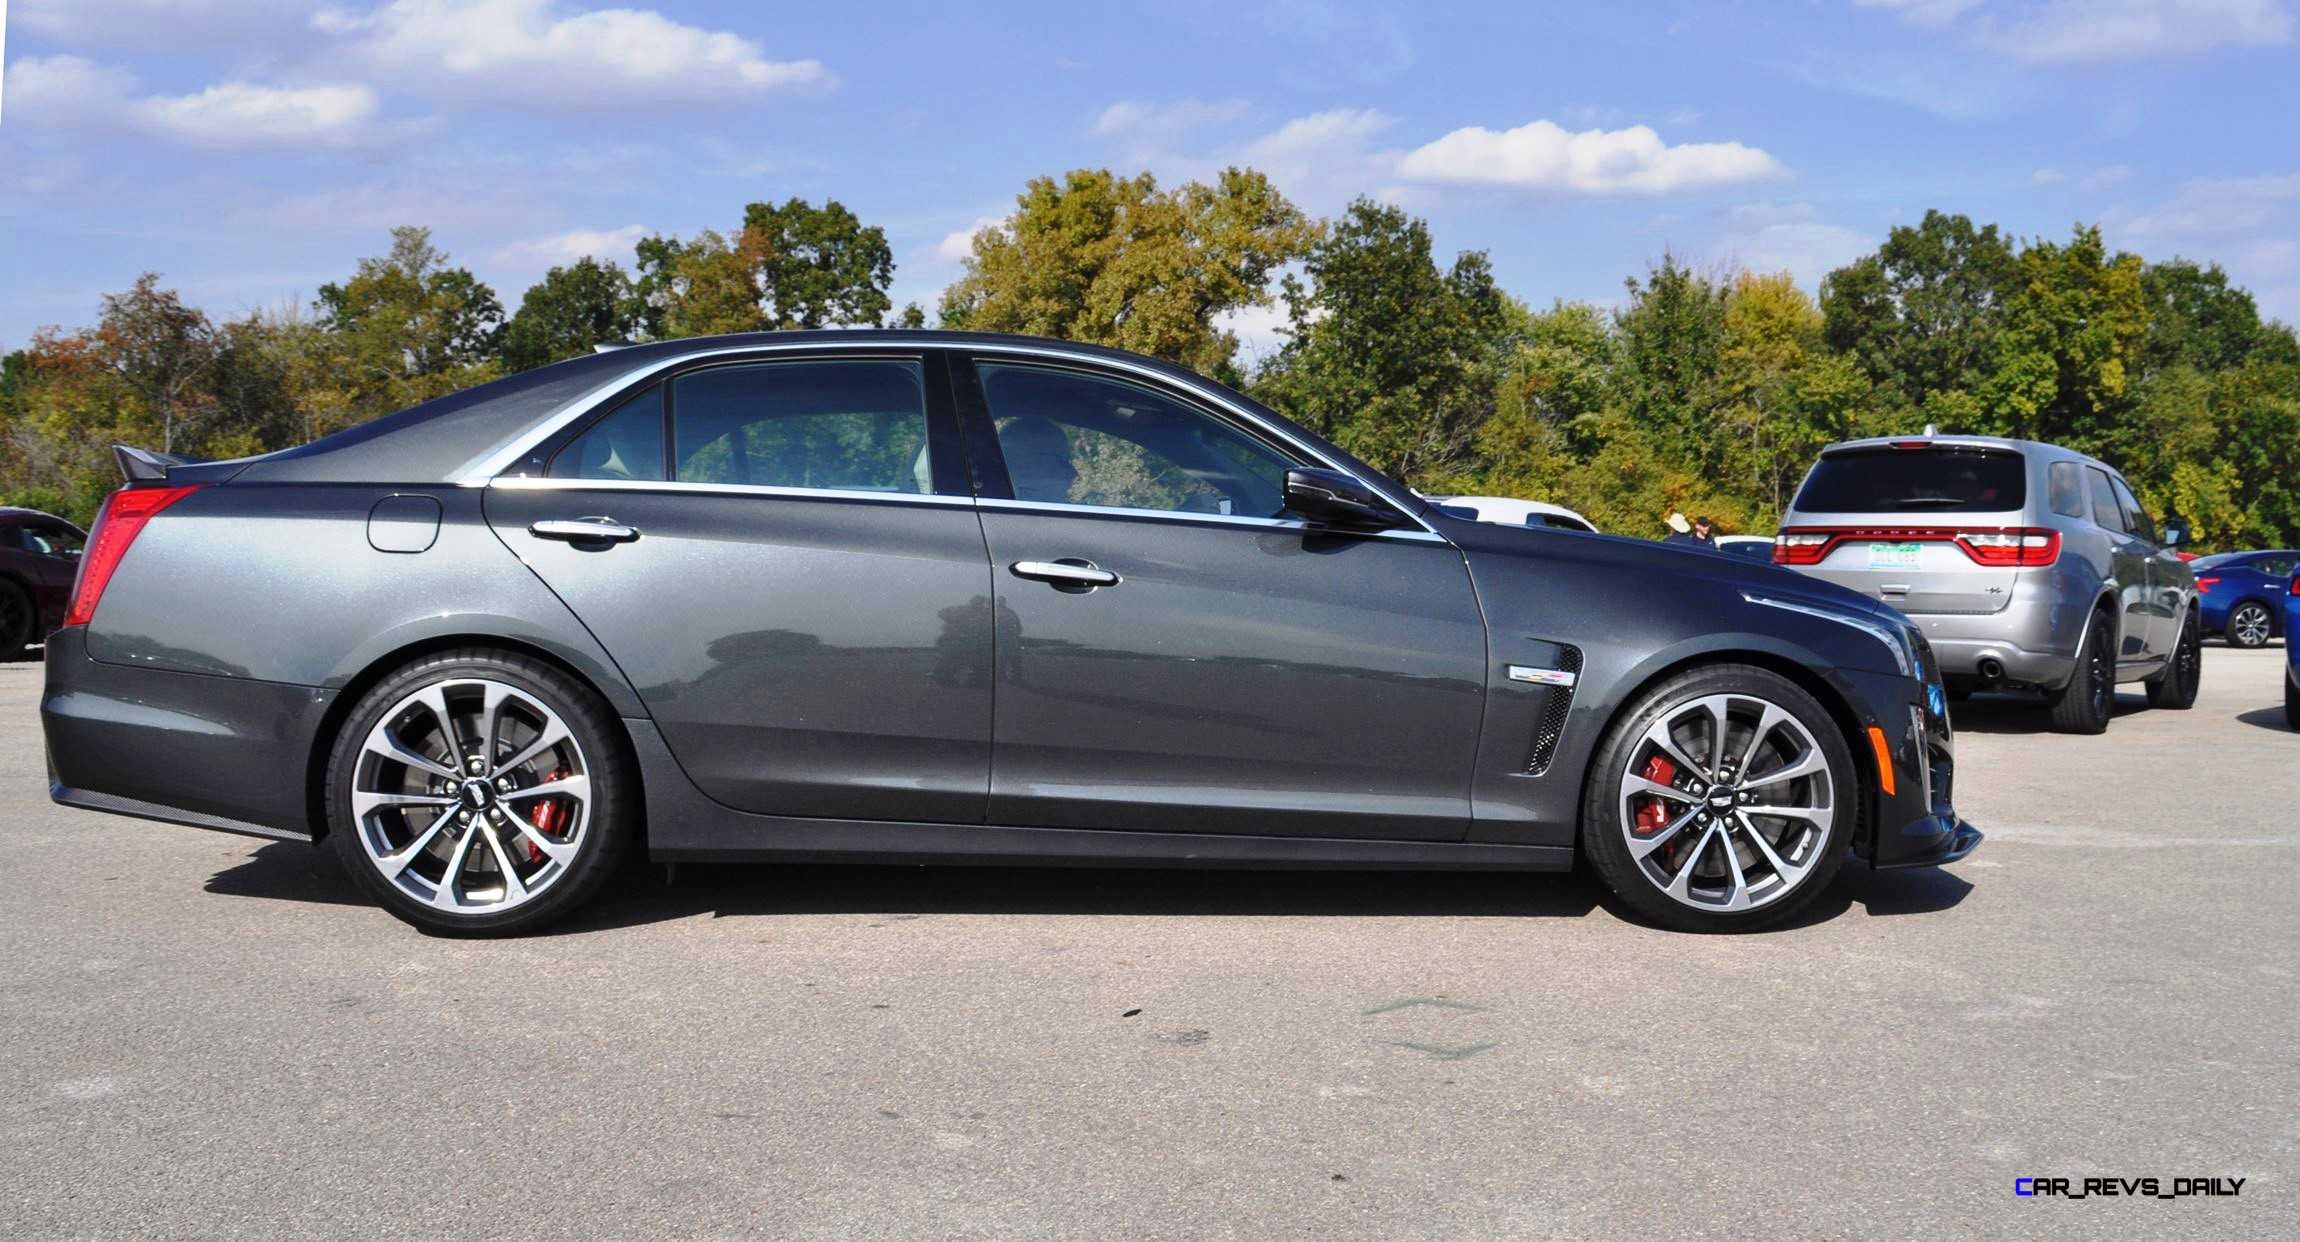 2016 cadillac cts v phantom grey and carbon package 46 car revs. Black Bedroom Furniture Sets. Home Design Ideas